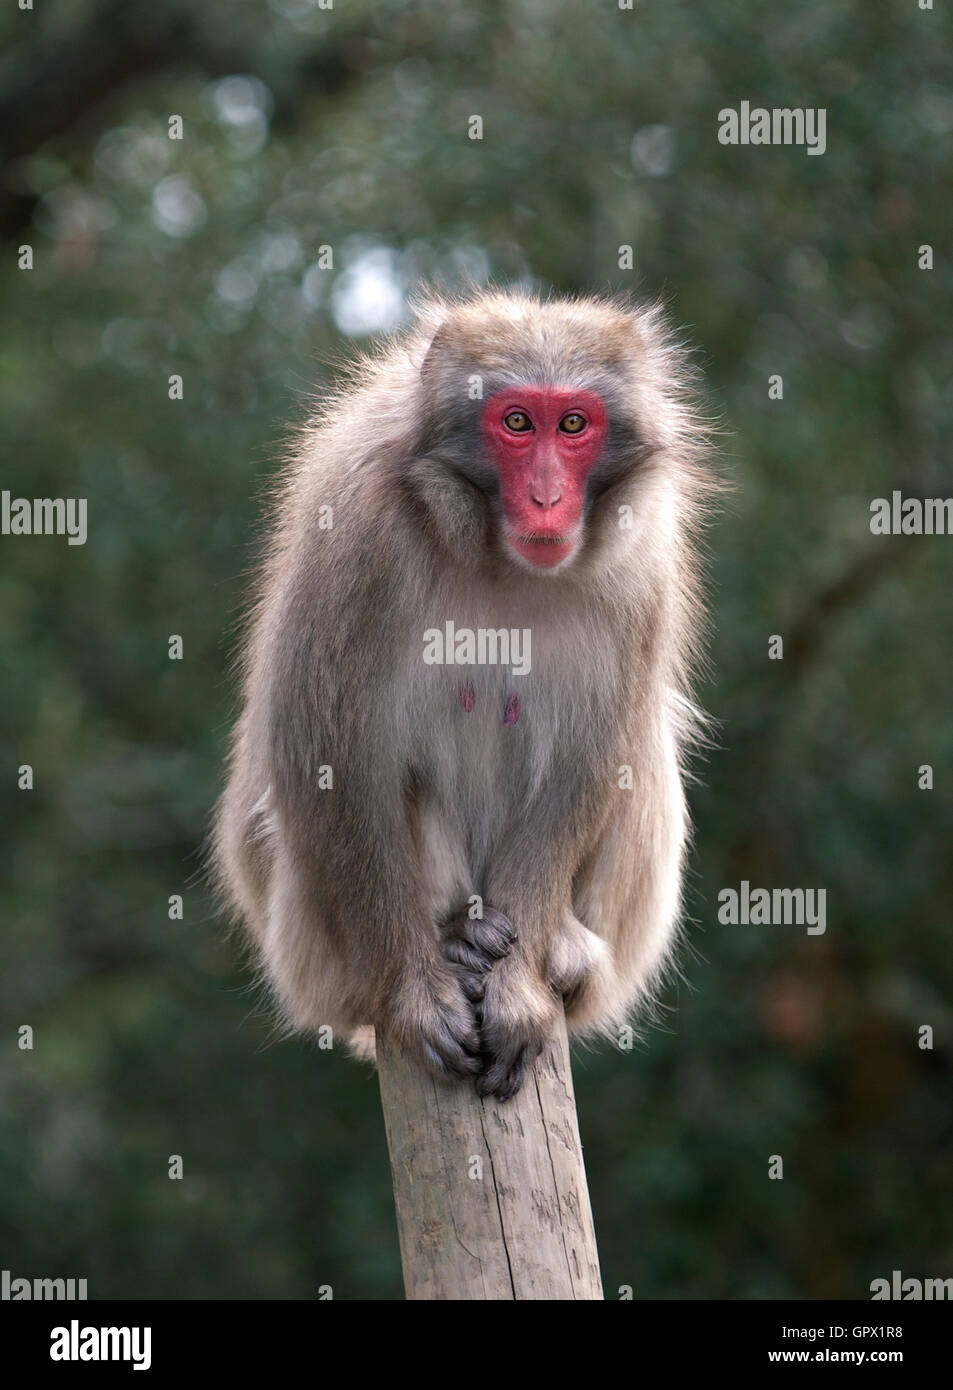 Japanese macaque, Macaca fuscata. Zoological Park. Portugal Stock Photo